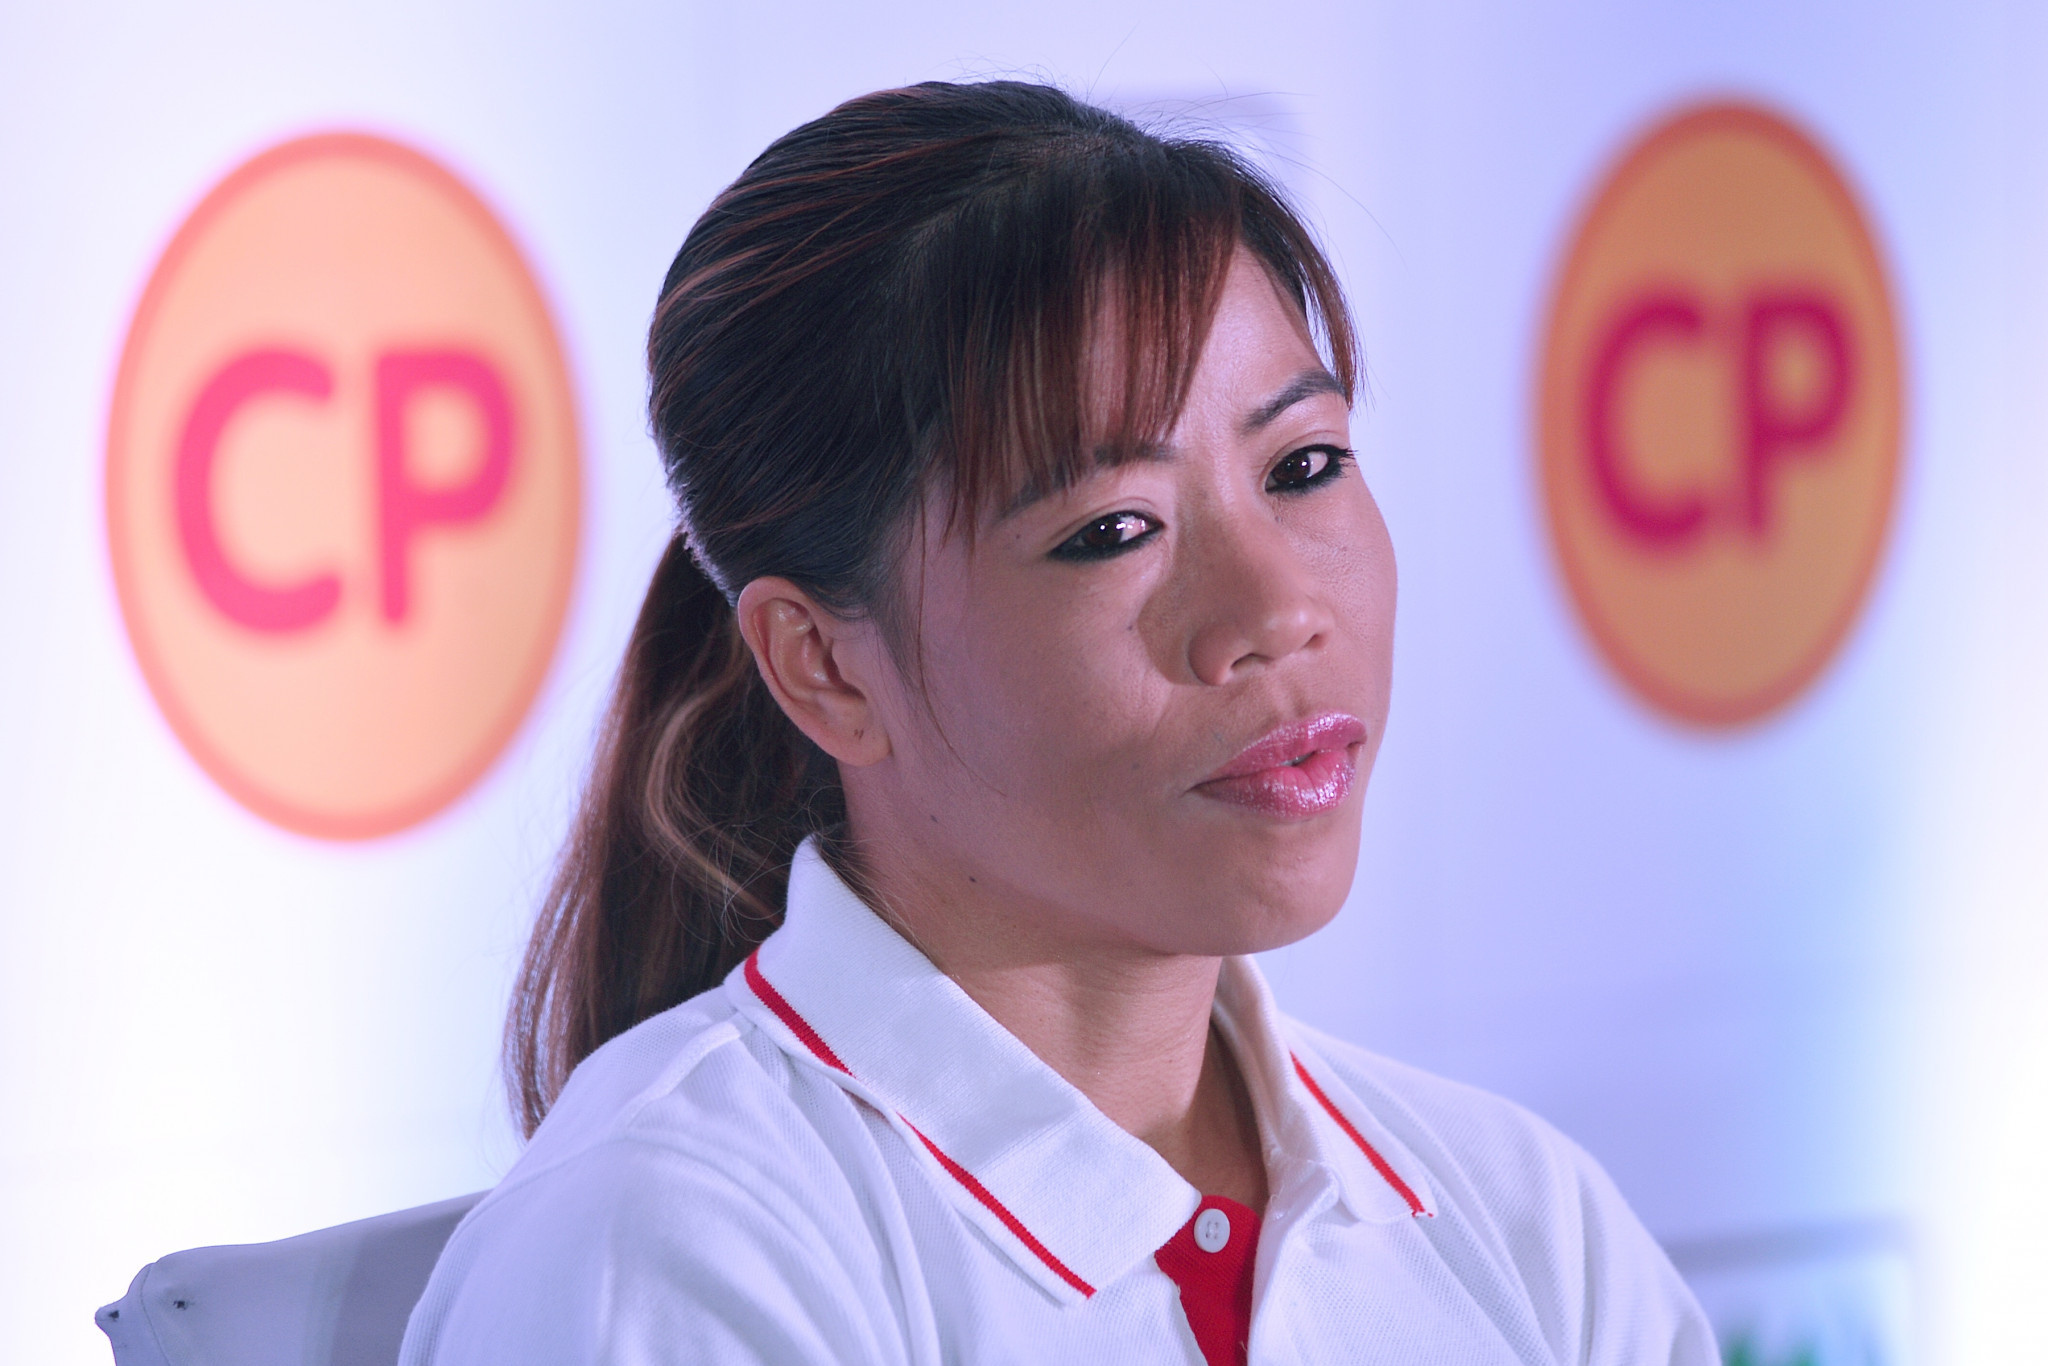 Five-time world champion Mary Kom has become the first Indian to be selected as the representative of AIBA for the IOC International Athletes' Forum ©Getty Images